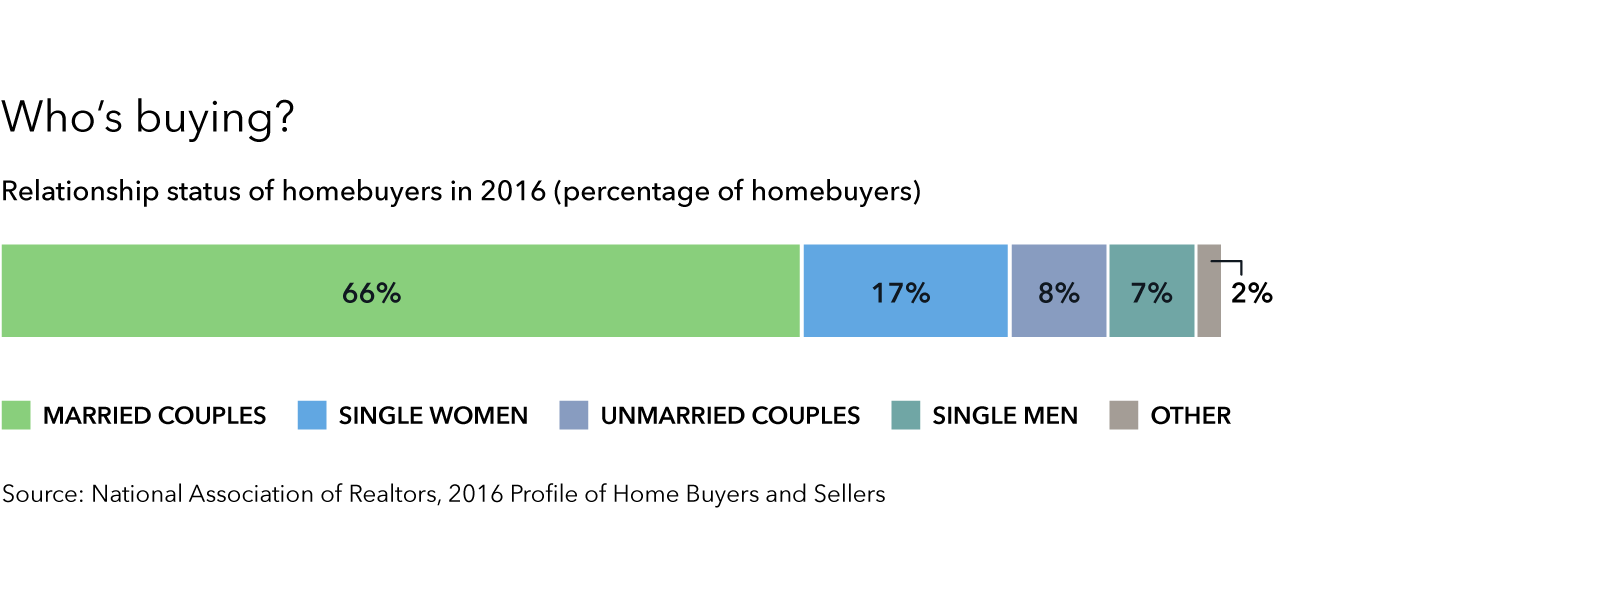 Relationship status of homebuyers in 2016 data visualization